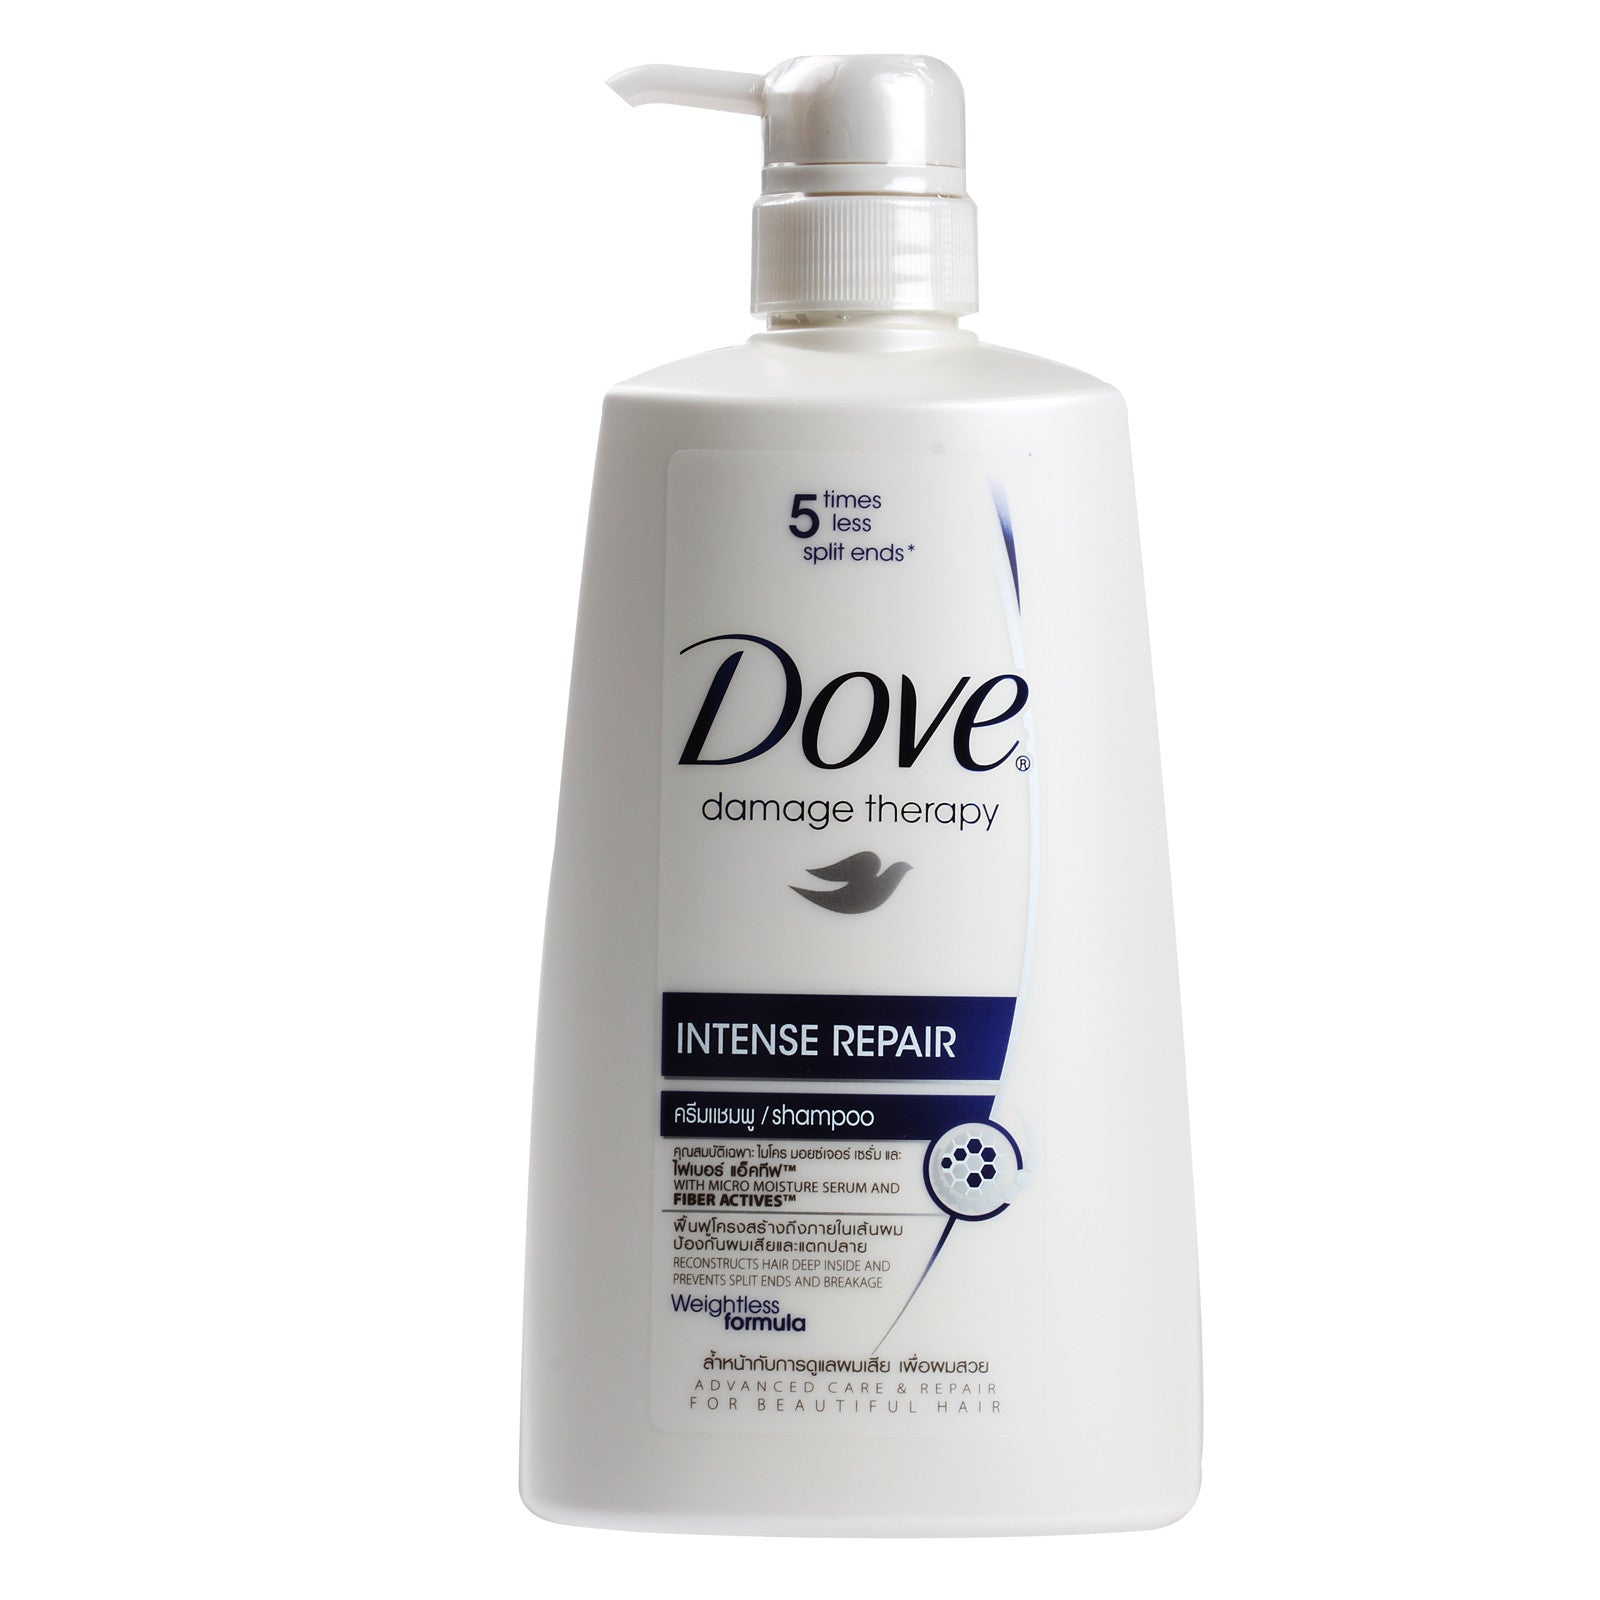 Dove Damage Therapy Intense Repair Shampoo (700ml)